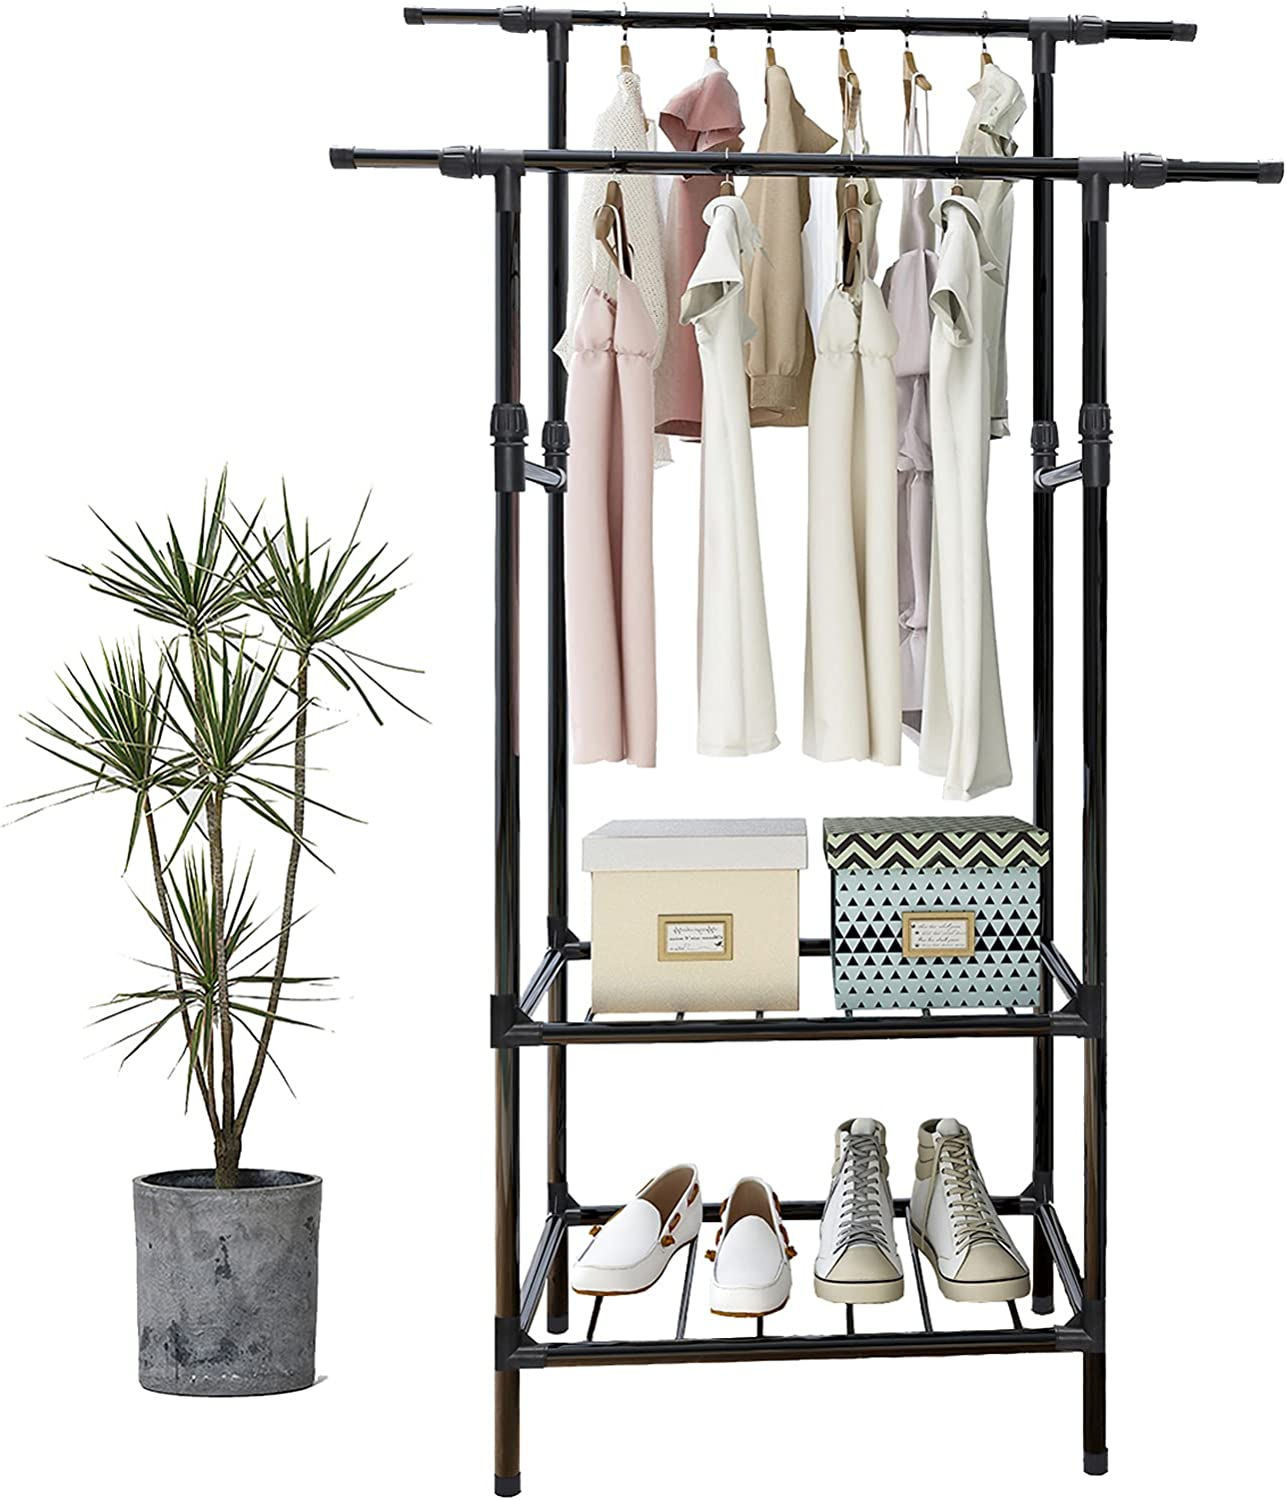 Clothing Max 72% OFF Rack Heavy Duty Freestanding High order Clothes Garmen Double Rods